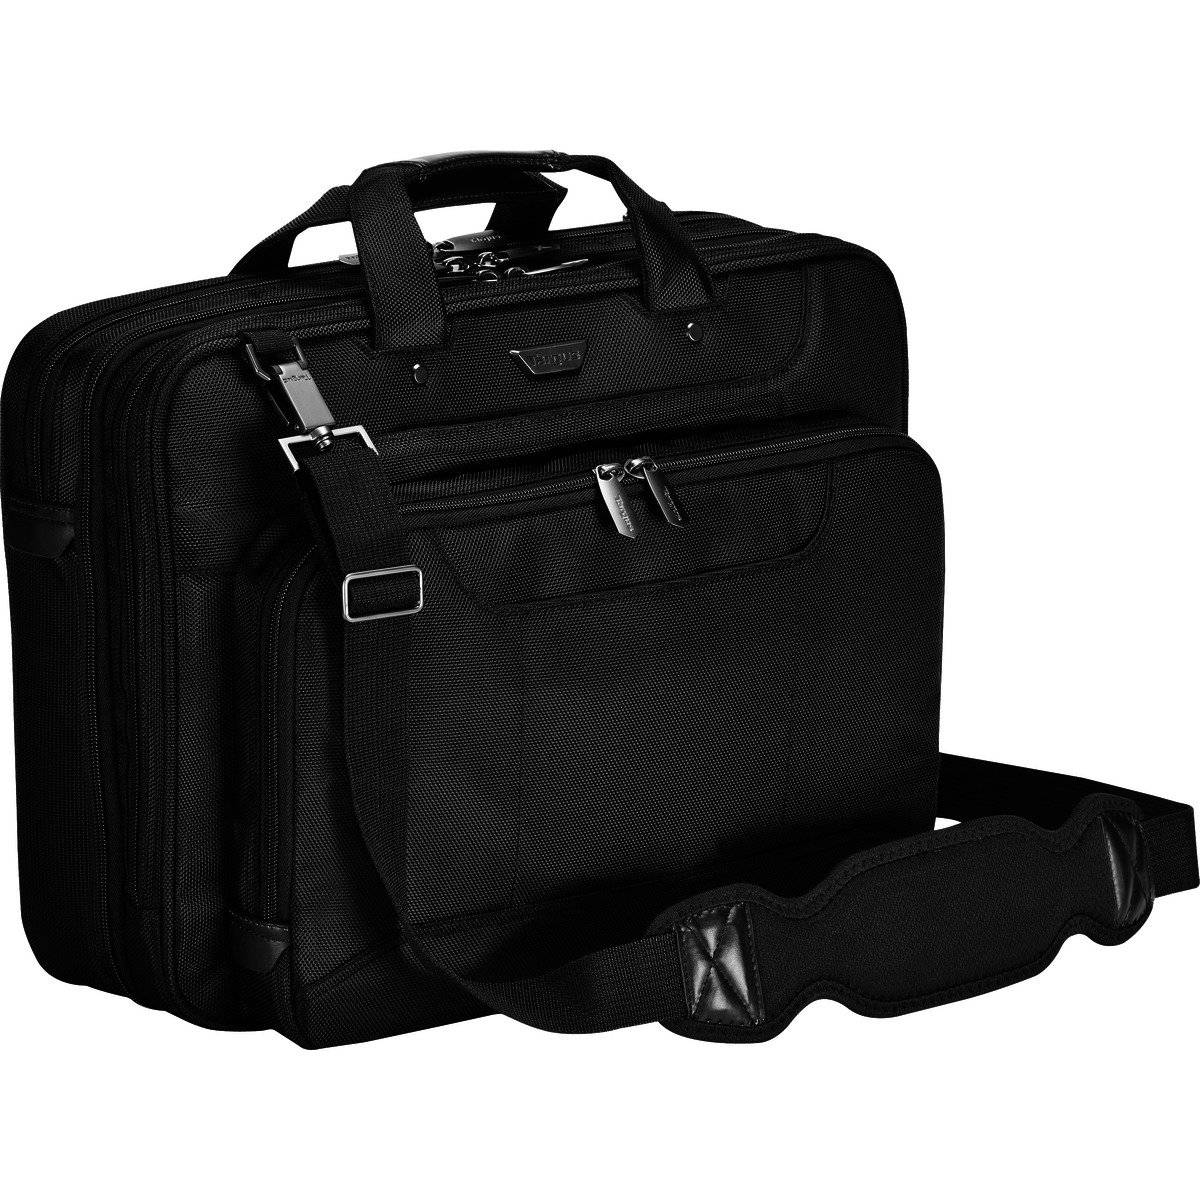 Targus Corporate Traveler Checkpoint-Friendly Laptop Bag for 16-Inch Laptops, Black (CUCT02UA15S) by Targus